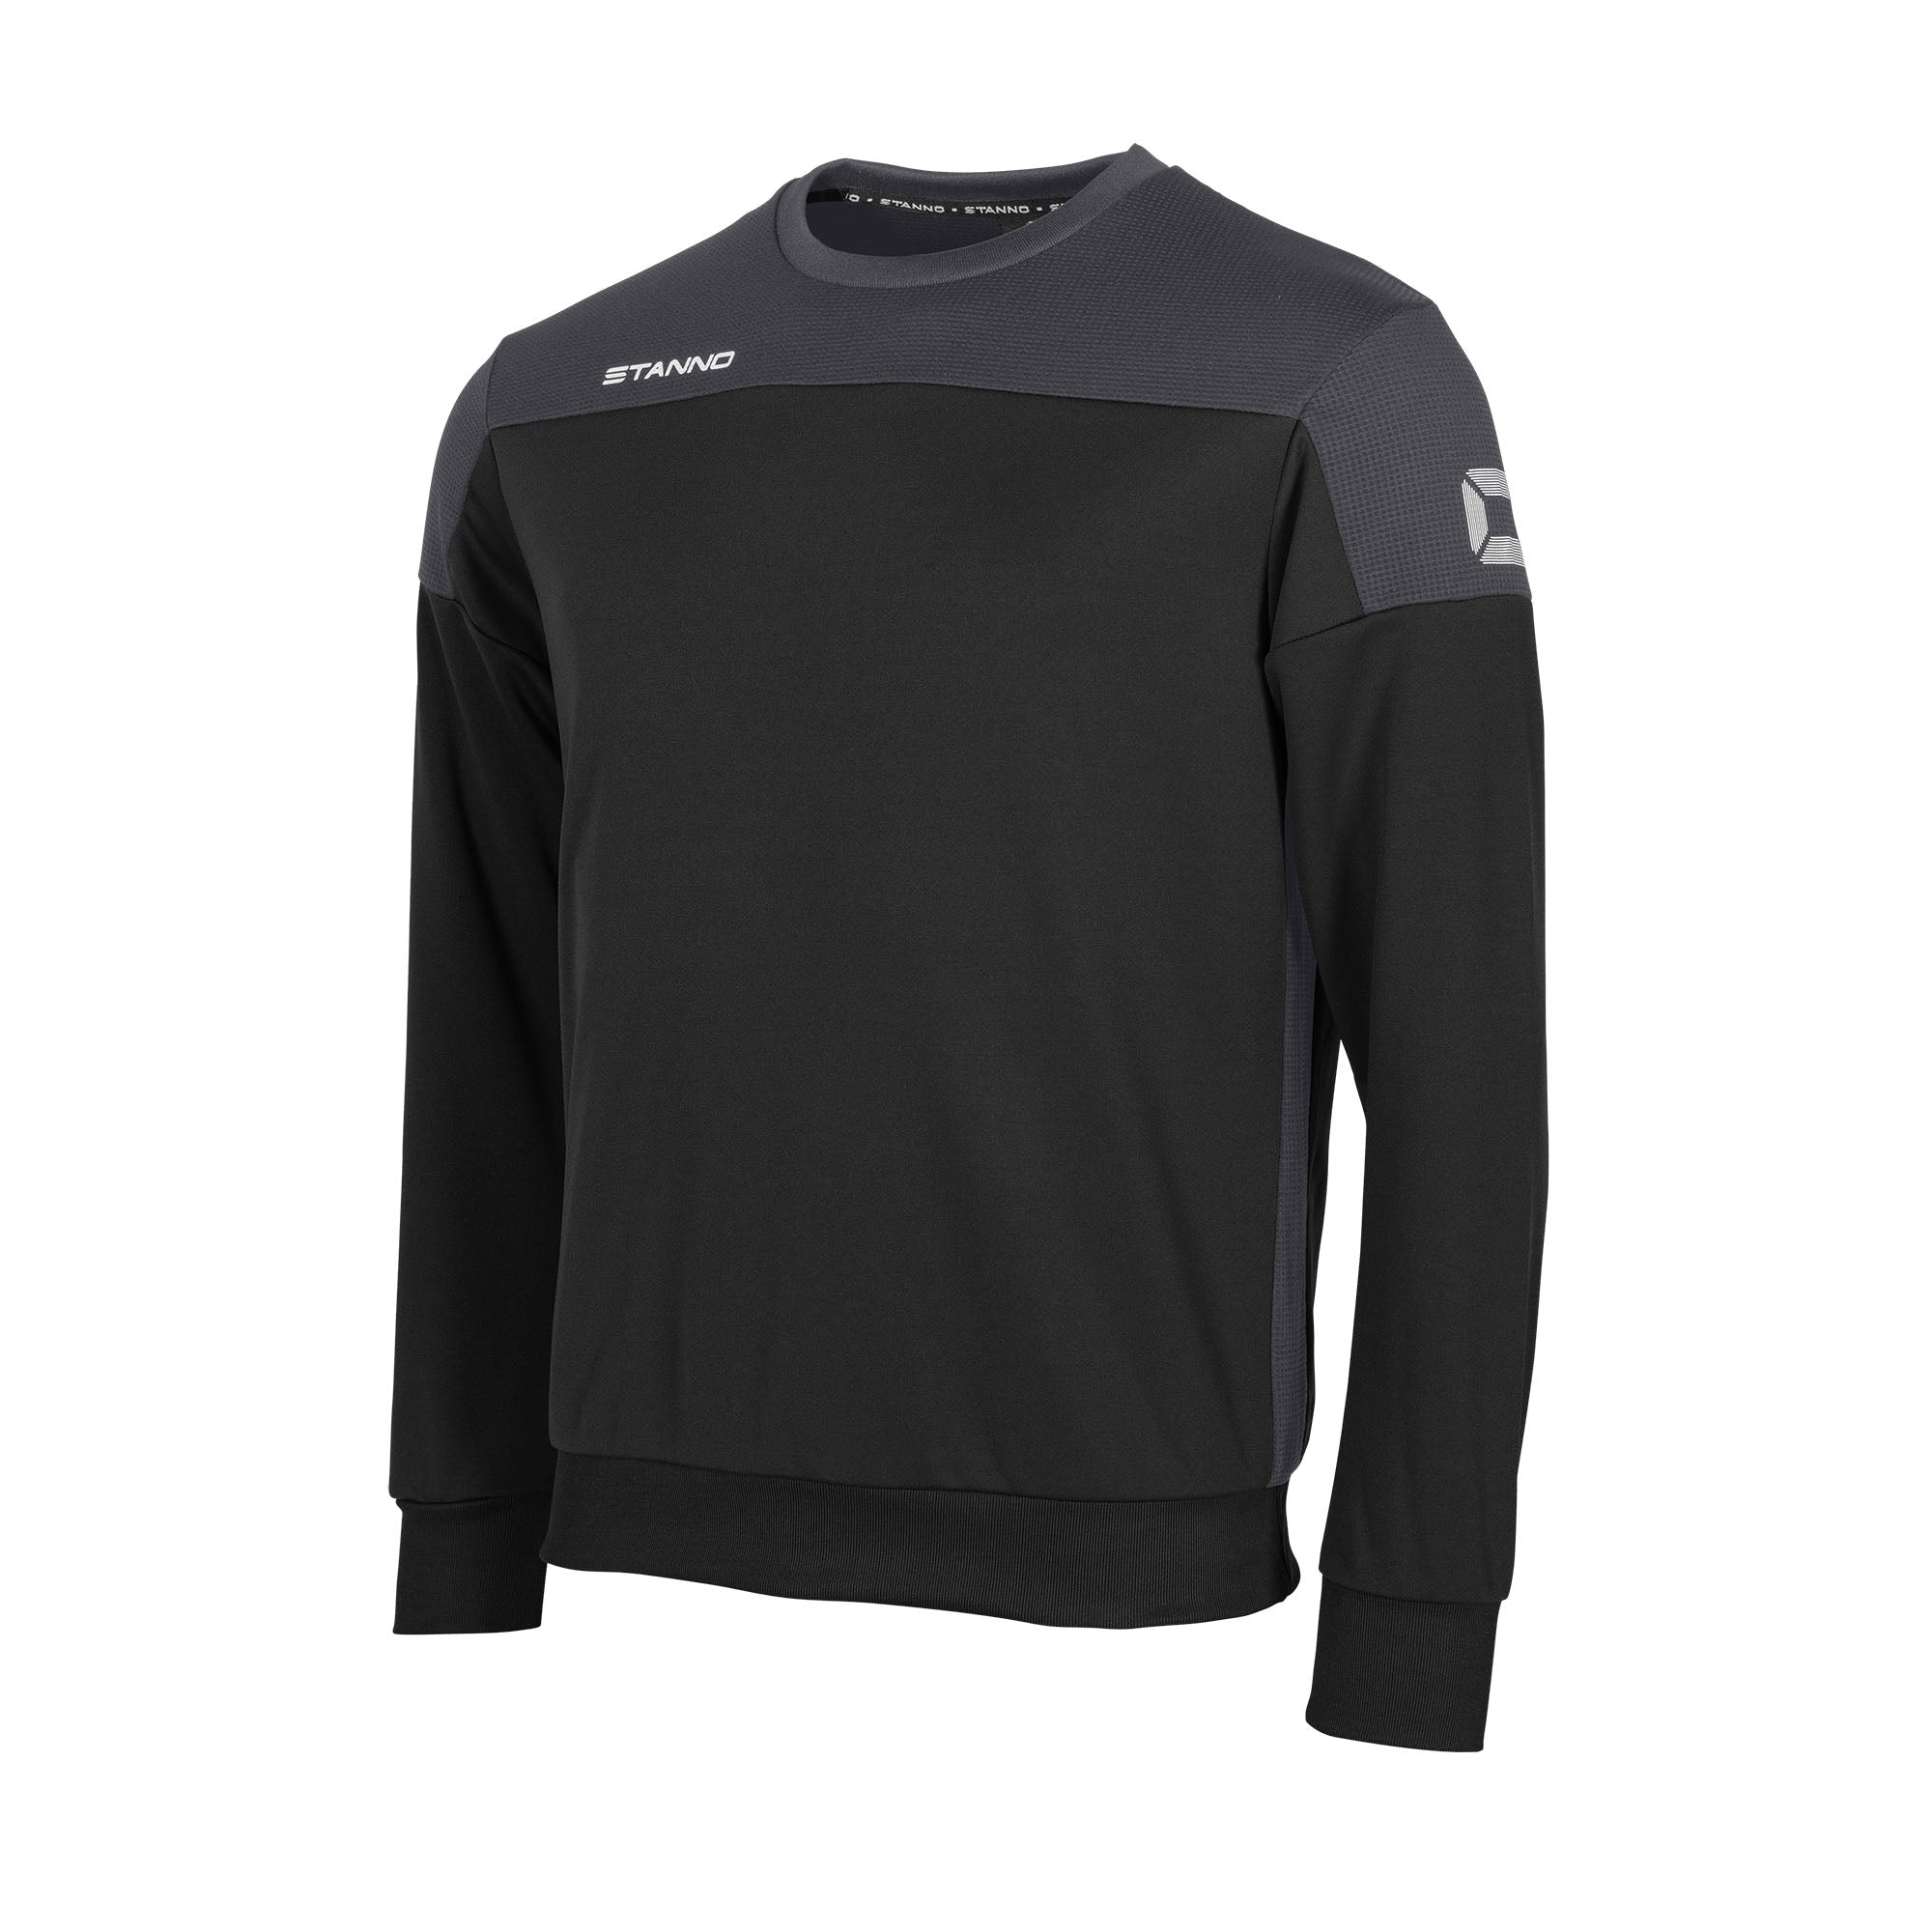 Stanno Pride round neck sweatshirt in black, with mesh contrast anthracite shoulder and side panel